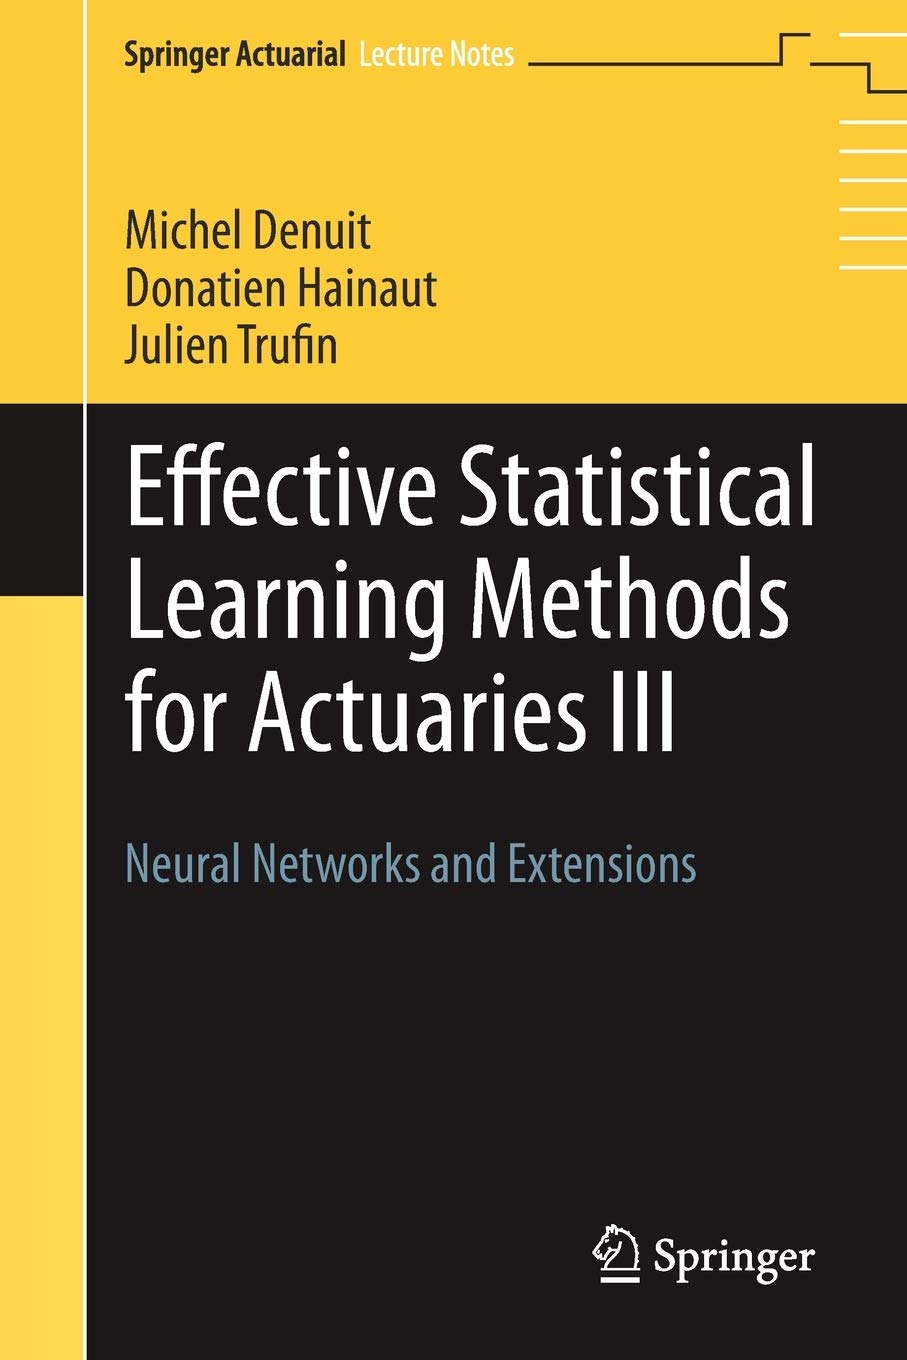 Effective Statistical Learning Methods For Actuaries III  Neural Networks And Extensions  Springer Actuarial